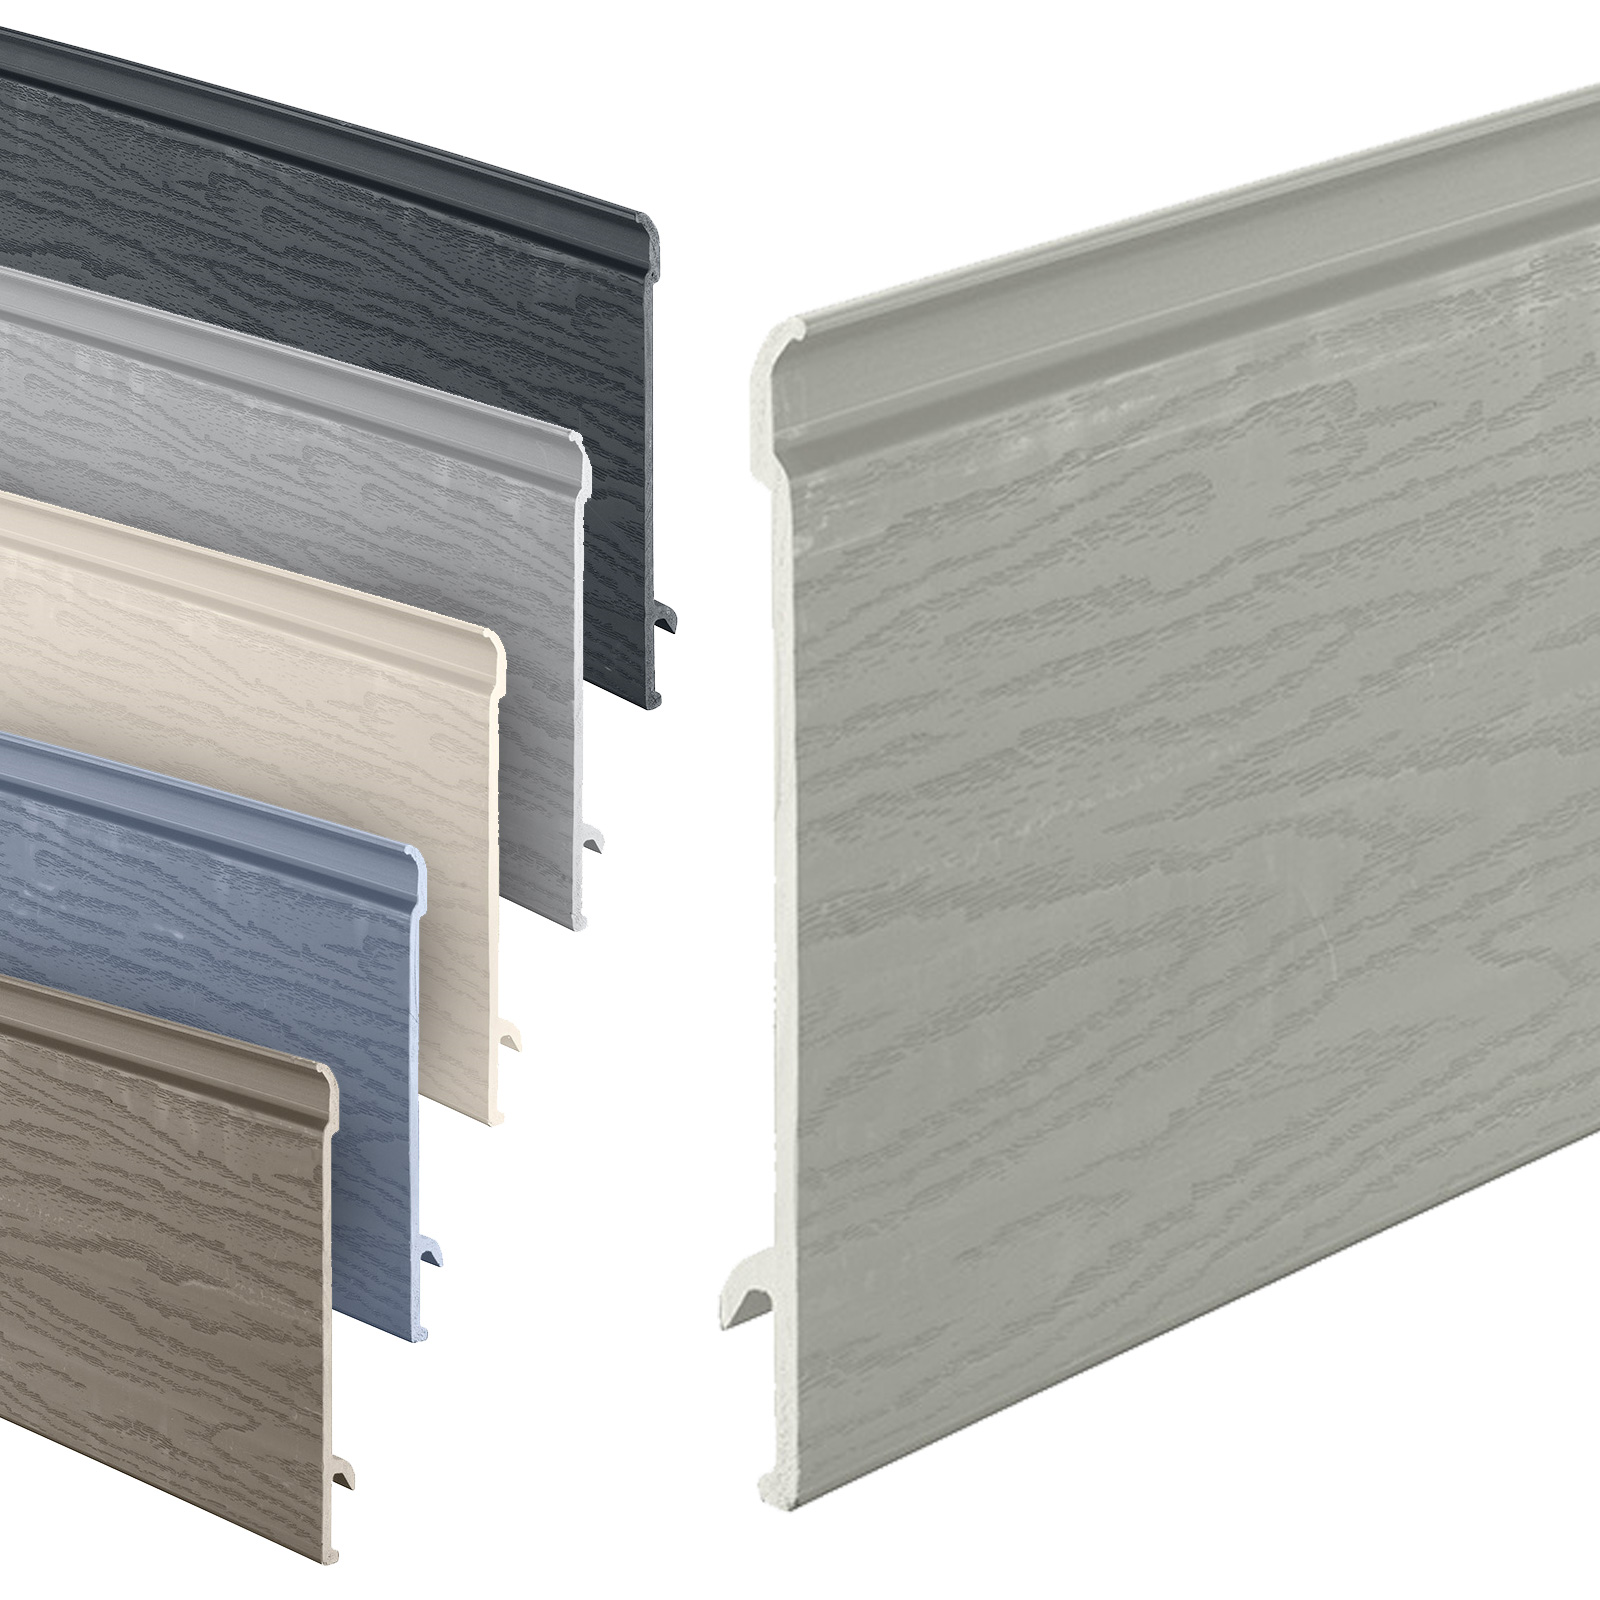 Composite Shiplap Cladding Boards